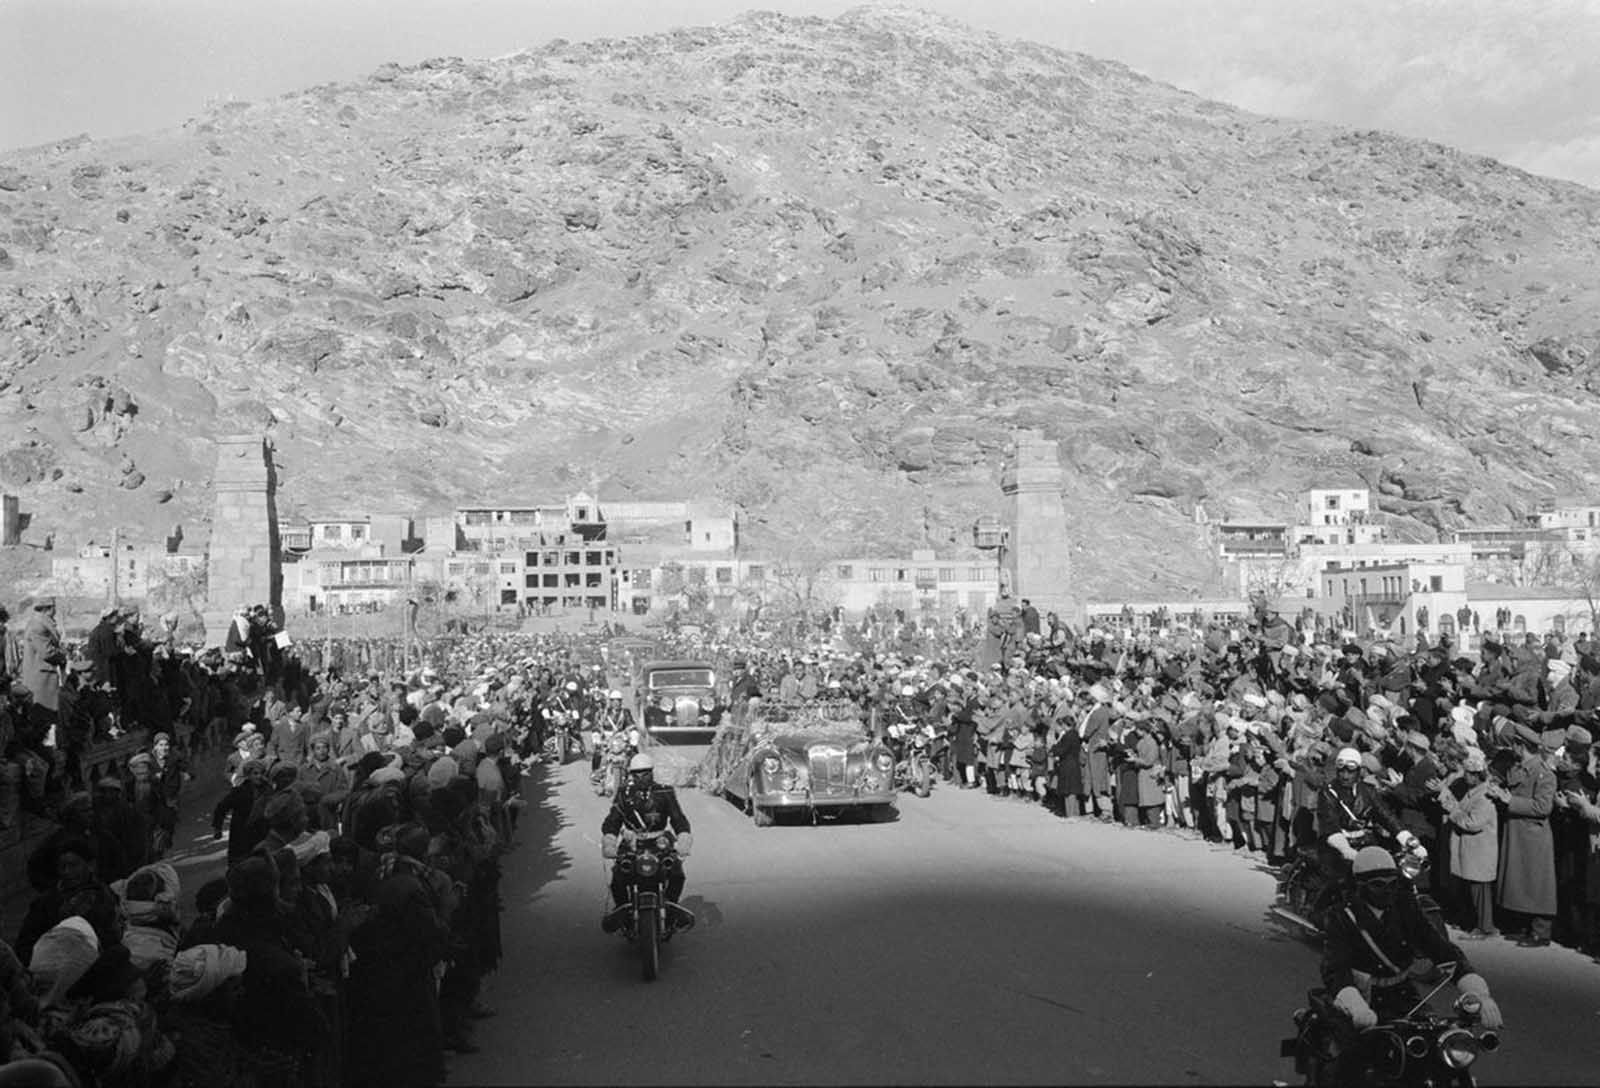 Motorcade for President Eisenhower's visit to Kabul, Afghanistan, on December 9, 1959. Eisenhower met briefly with the 45-year-old Afghan king, Mohammad Zahir Shah, to discuss Soviet influence in the region and increased U.S. aid to Afghanistan.